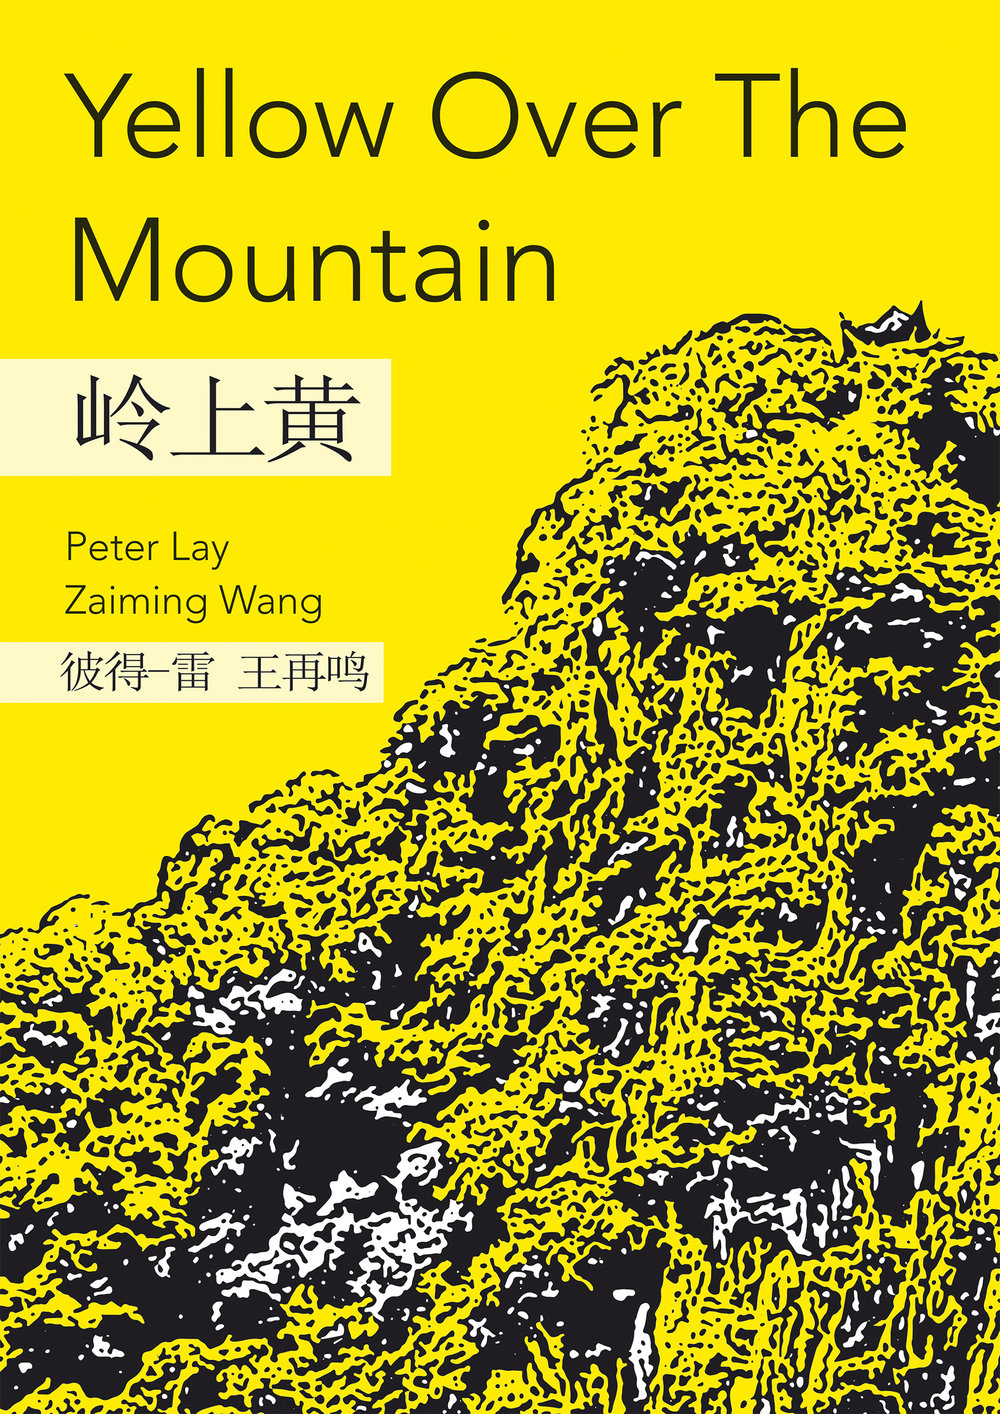 Yellow Over The Mountain Book Cover Design